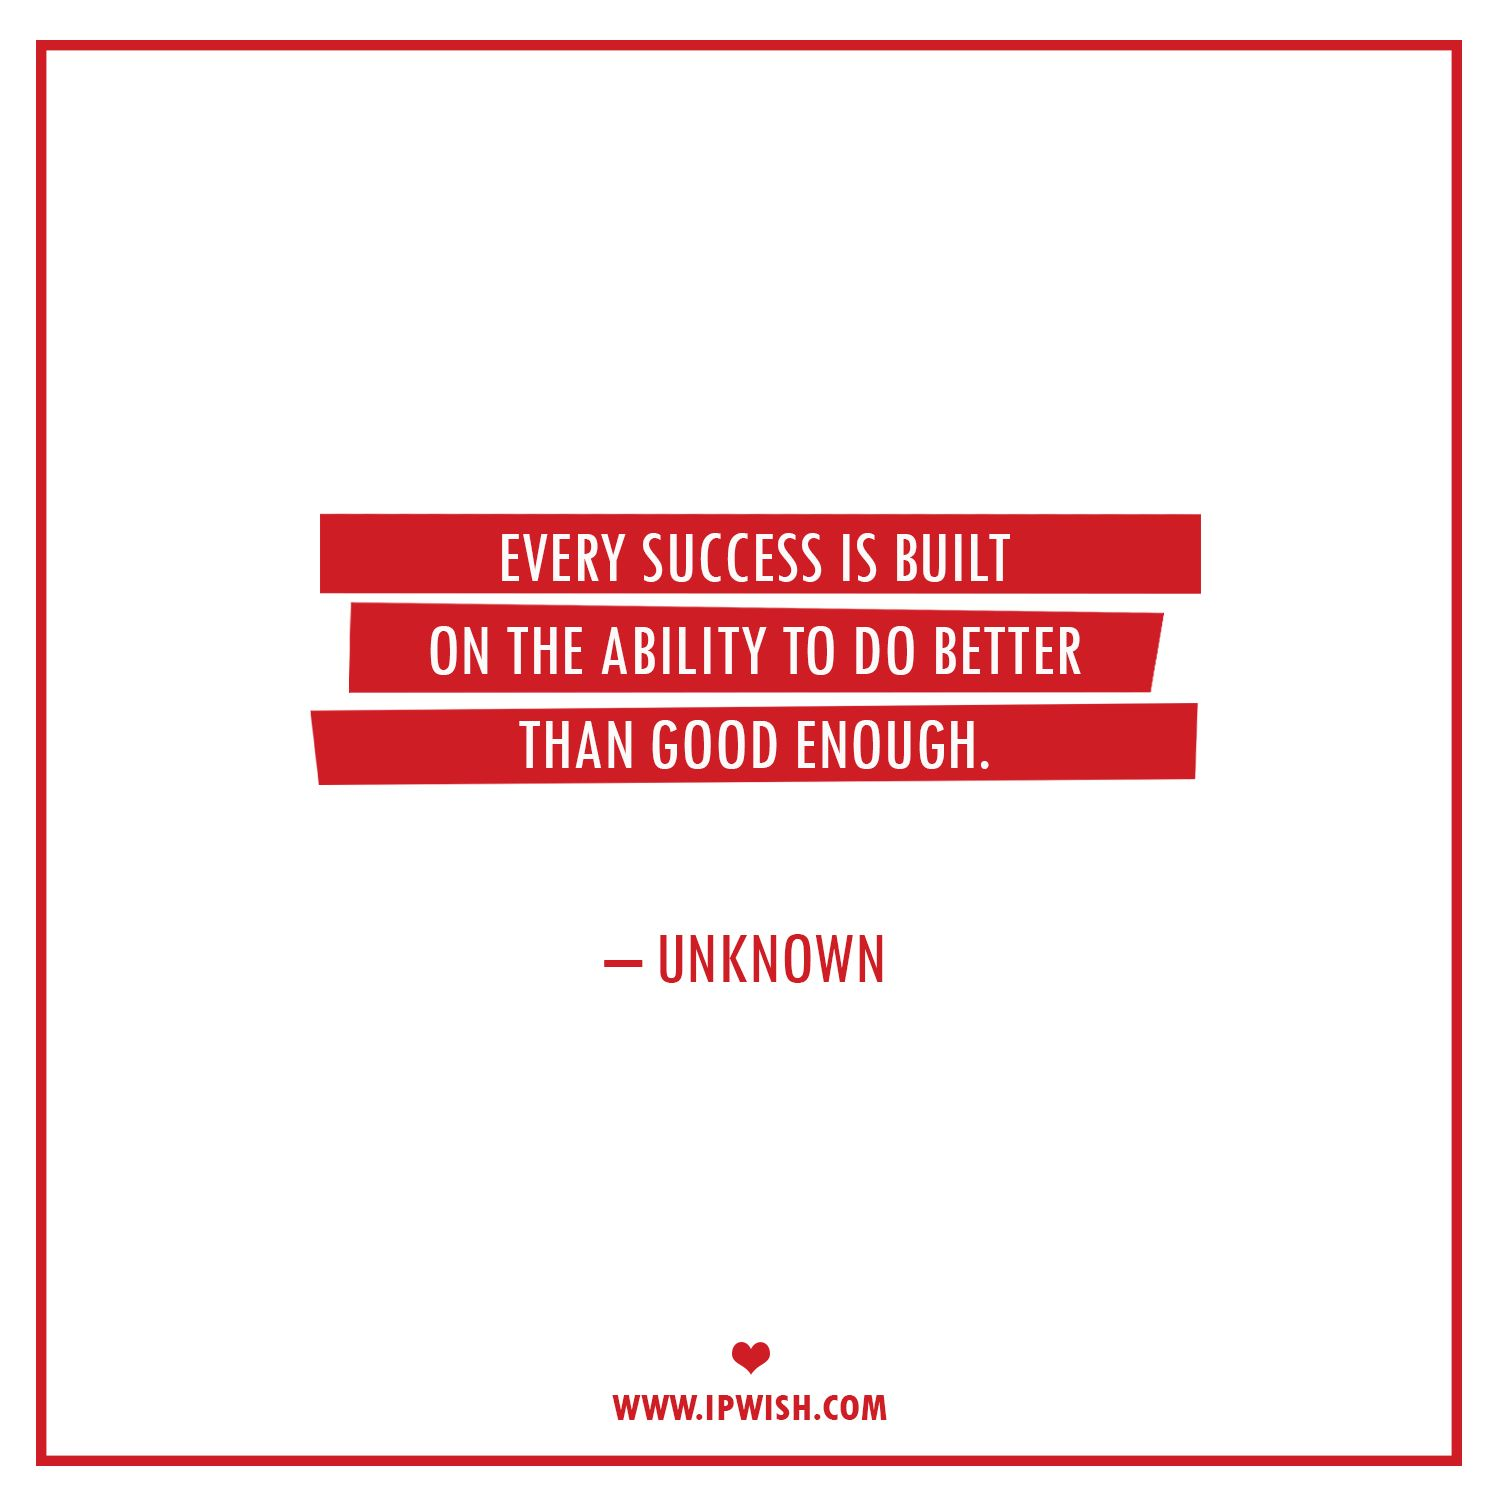 Every Success Is Built On The Ability To Do Better Than